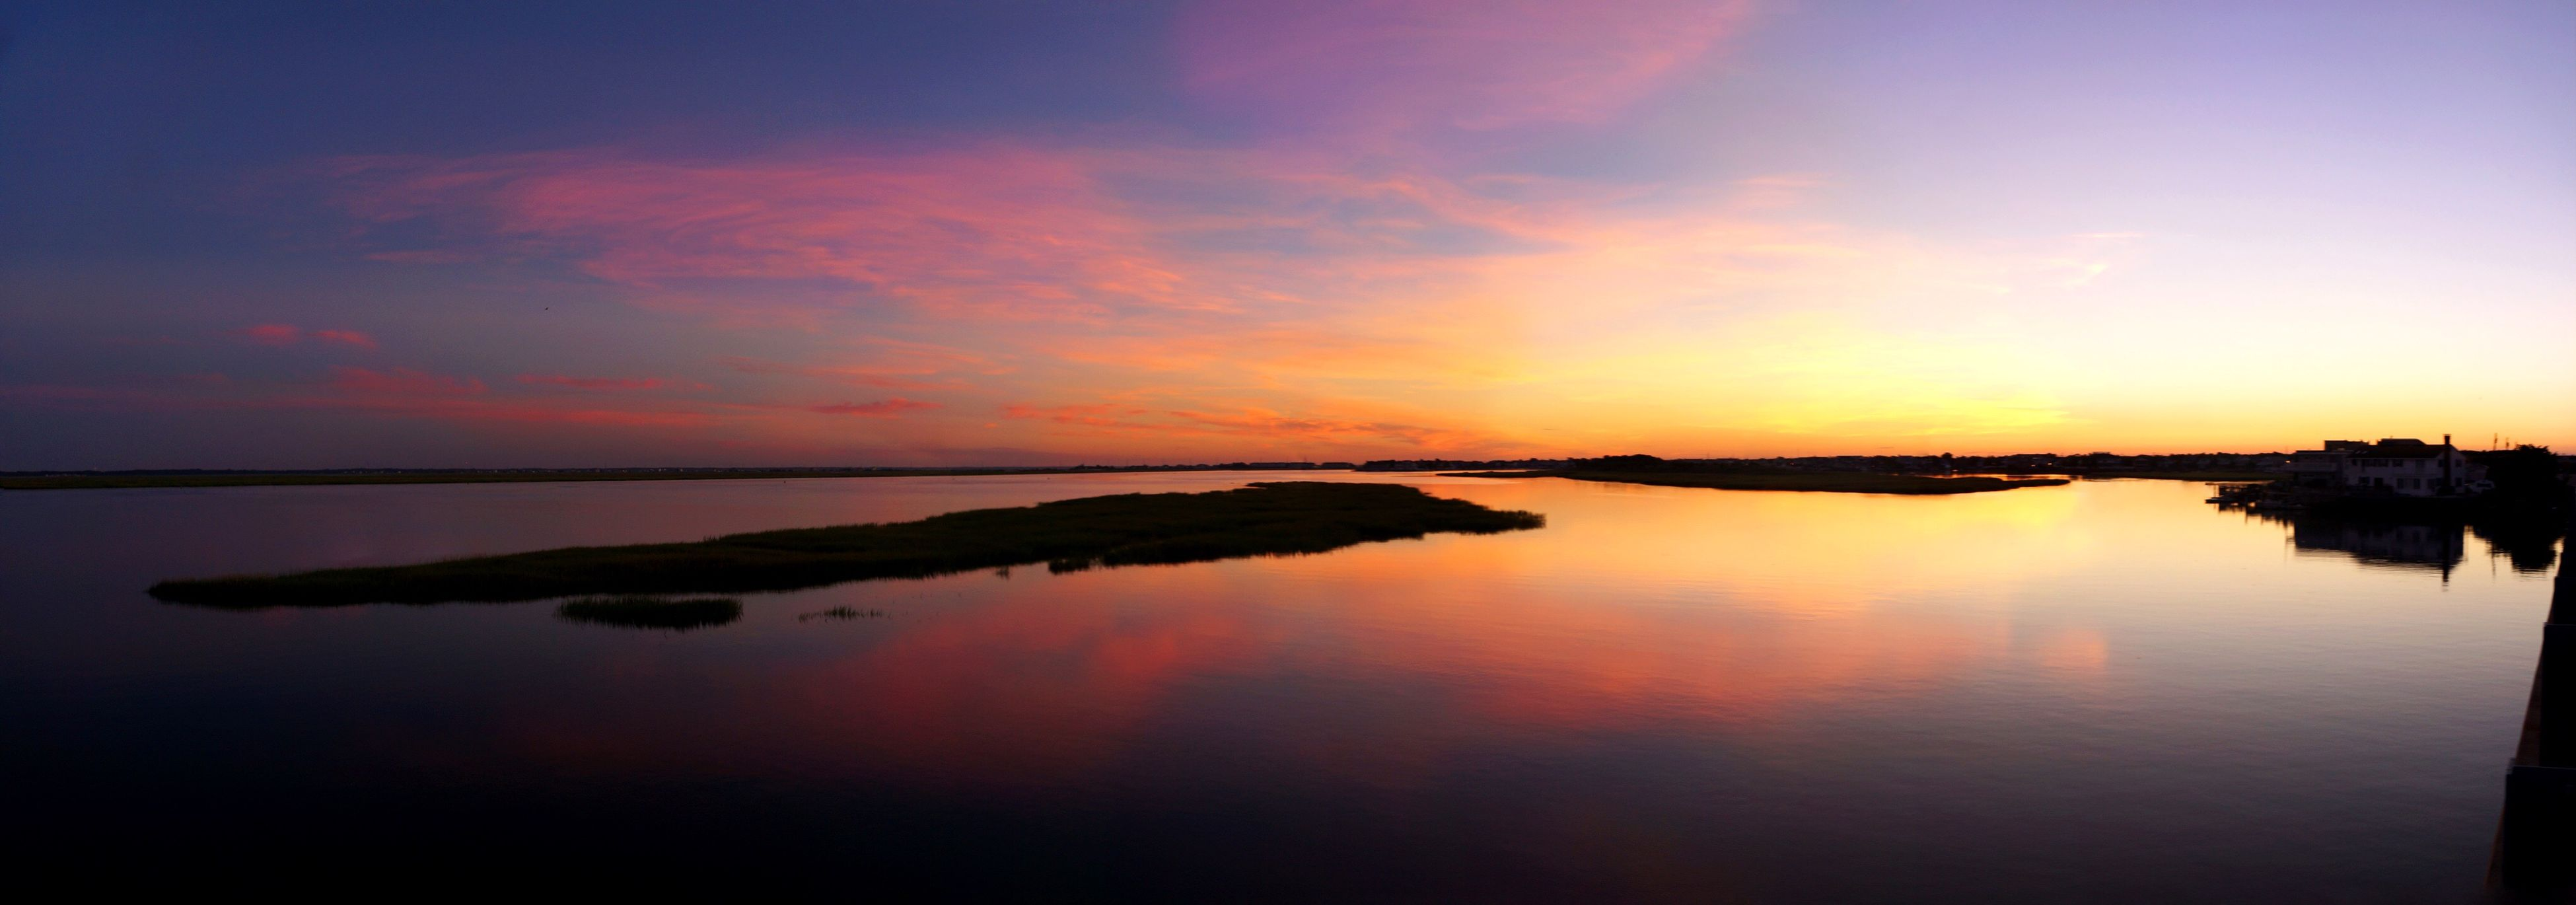 sunset, water, reflection, scenics, tranquil scene, tranquility, beauty in nature, orange color, idyllic, lake, waterfront, sky, nature, calm, standing water, travel destinations, cloud - sky, non-urban scene, dramatic sky, sea, majestic, tourism, romantic sky, atmosphere, atmospheric mood, vacations, no people, ocean